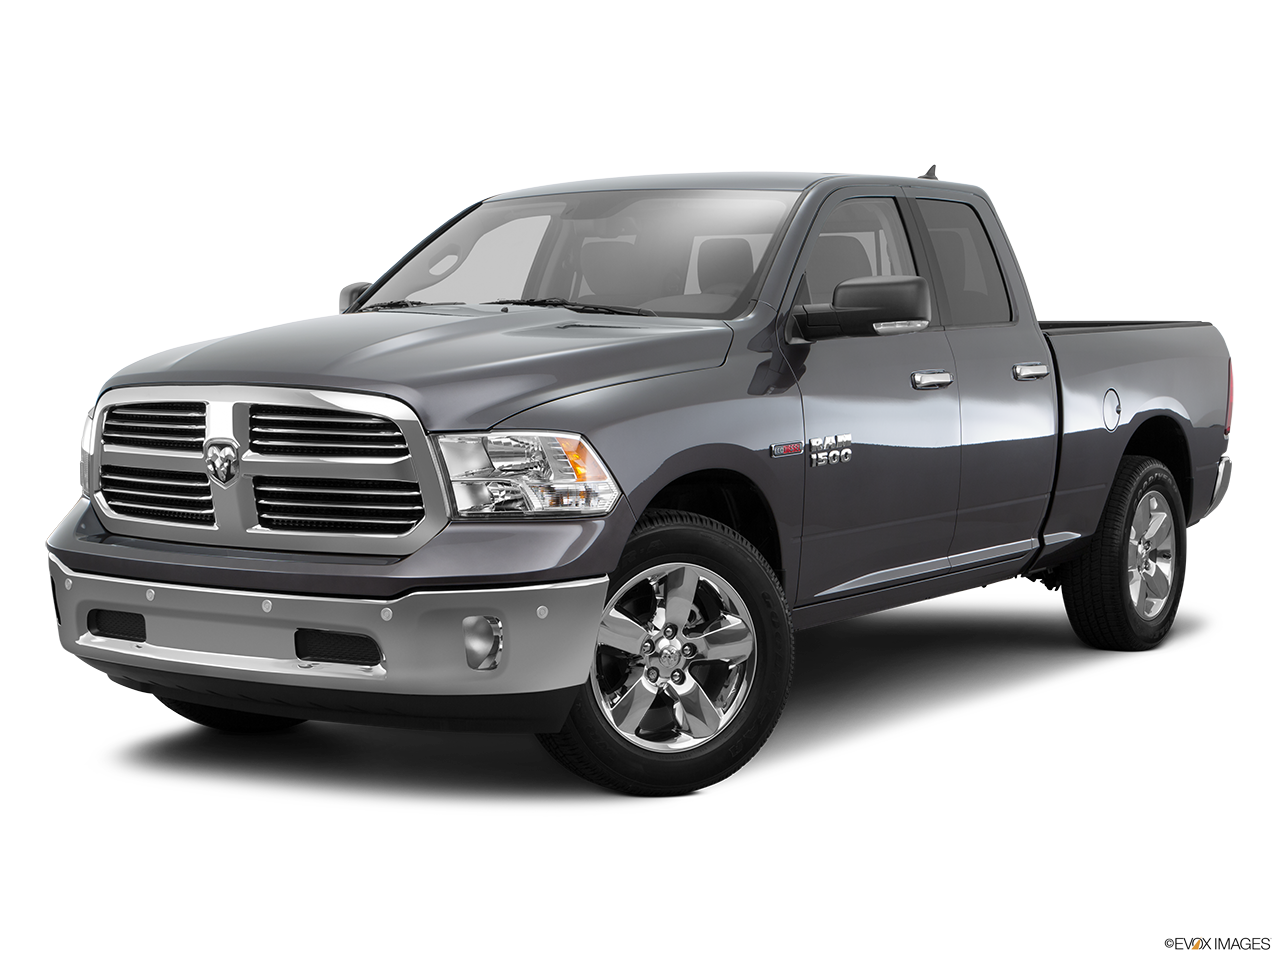 Test Drive A 2016 RAM 1500 at Cherry Hill Dodge Chrysler Jeep RAM in Cherry Hill